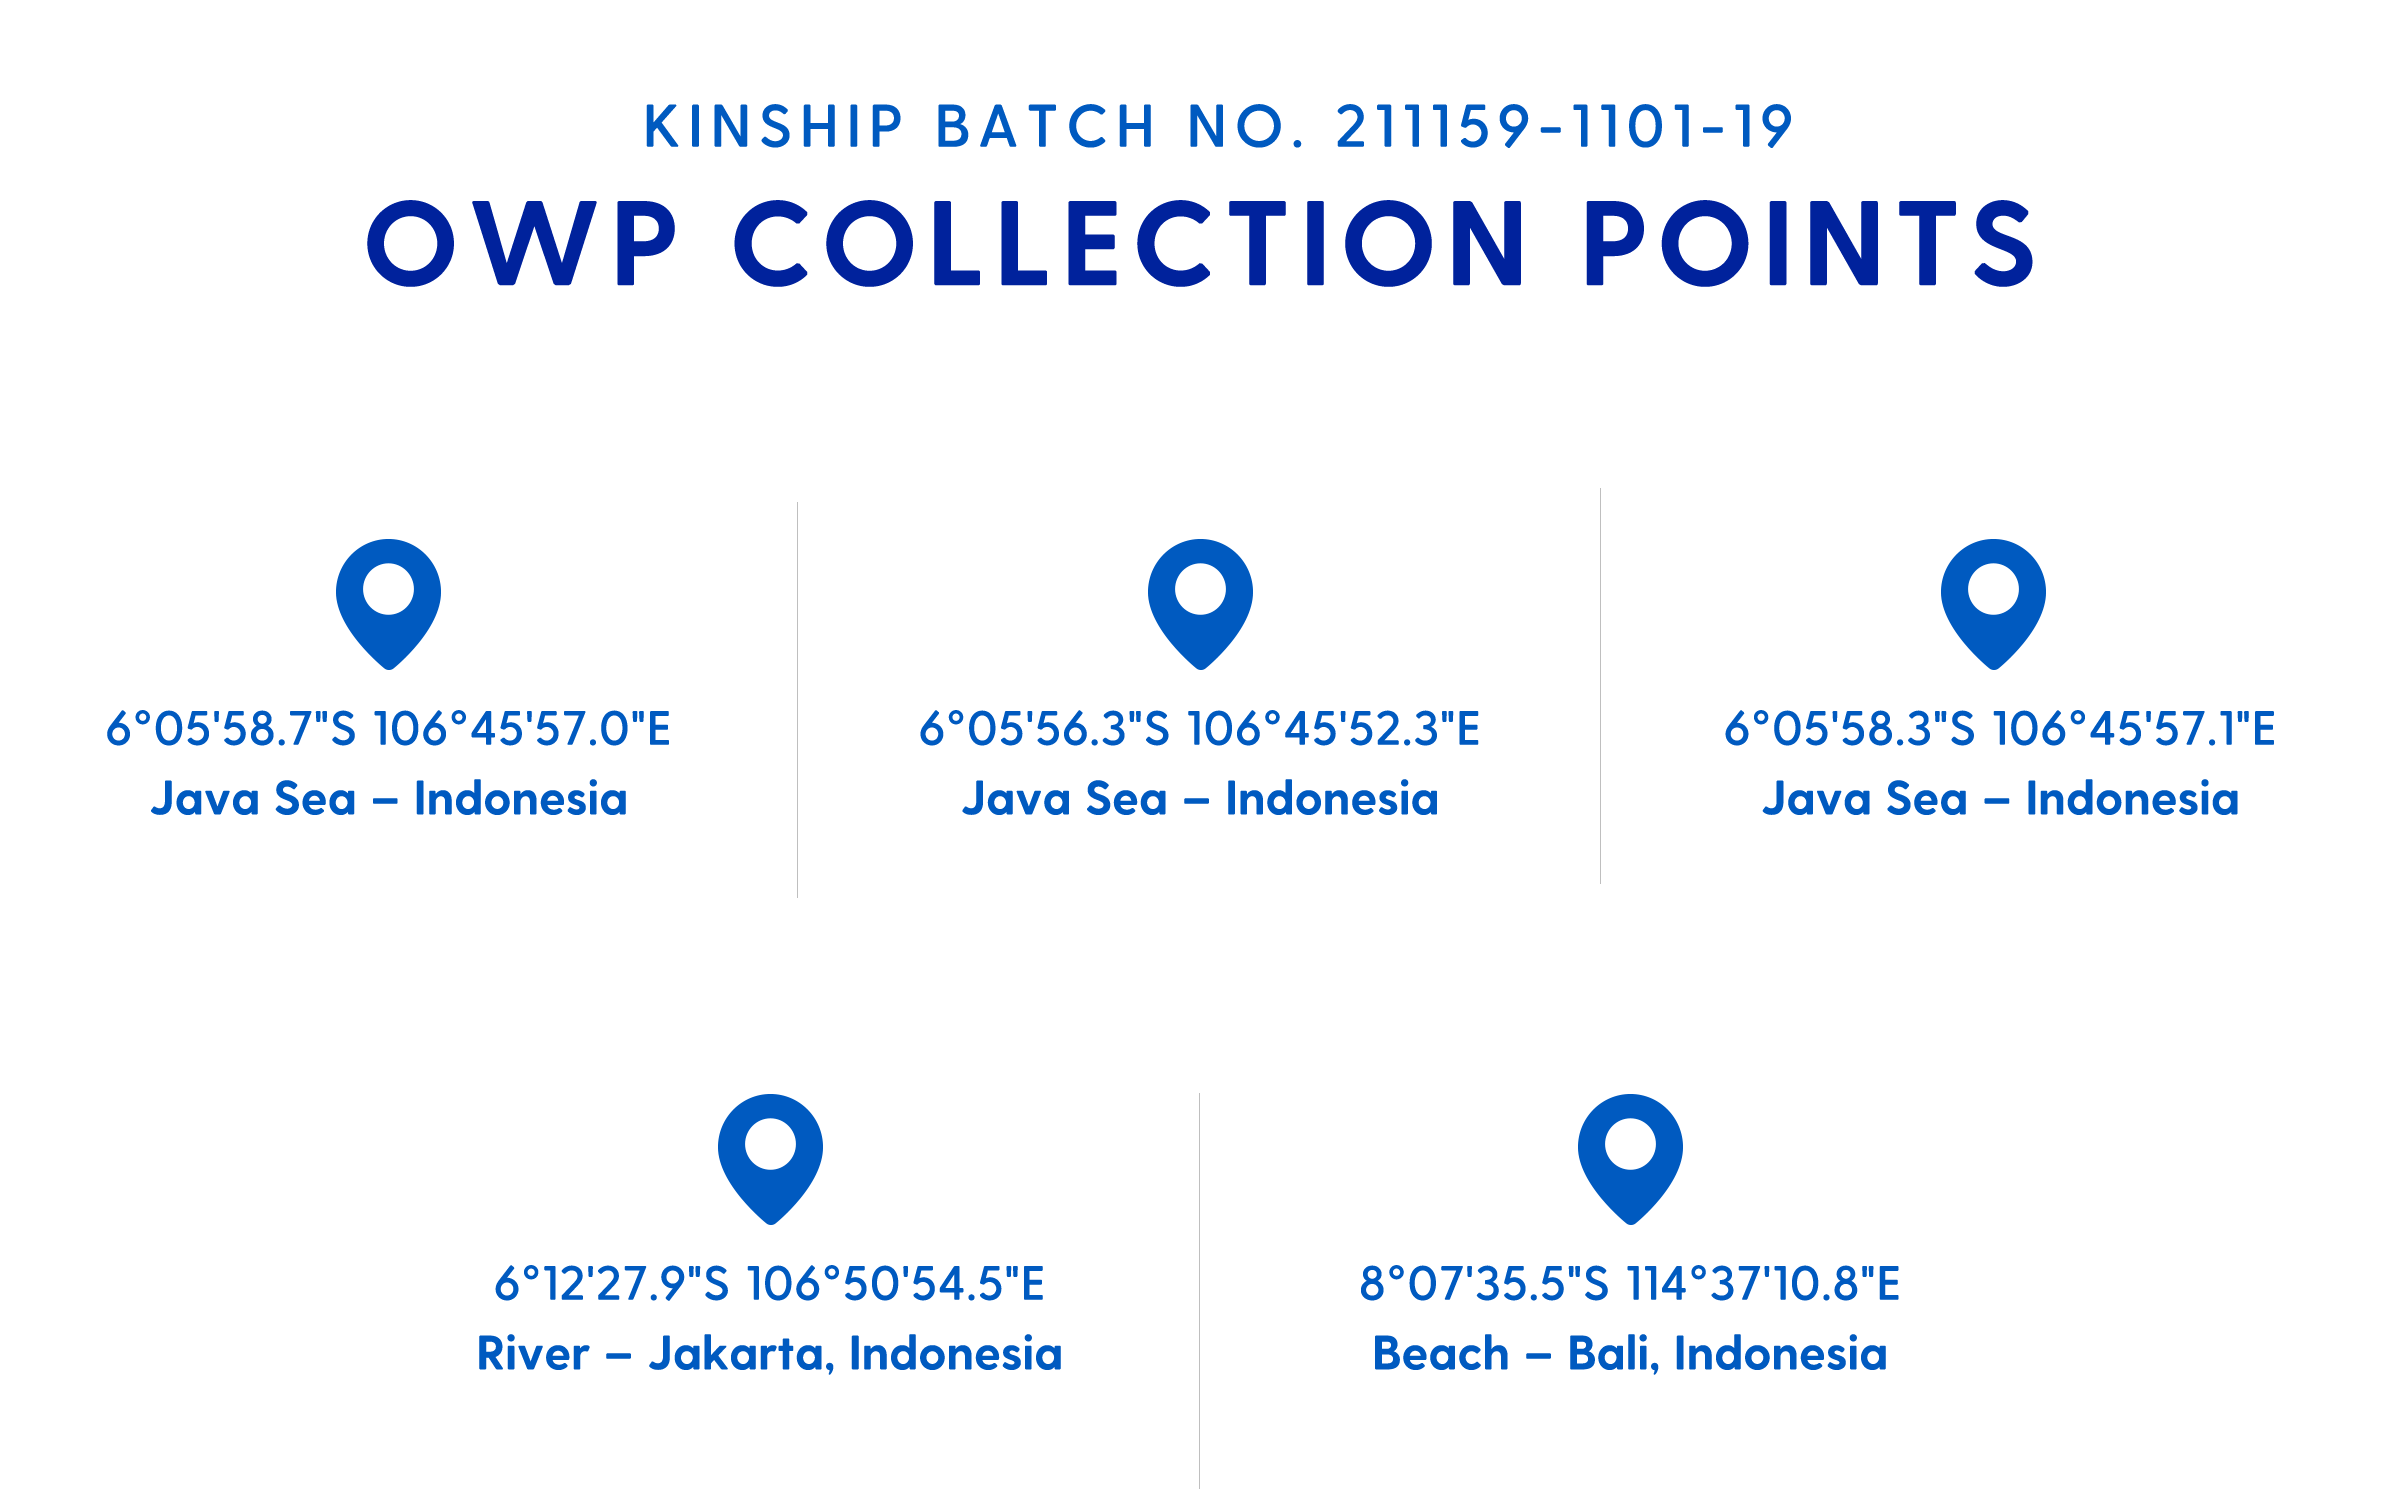 Sustainable Ocean Waste Plastic (OWP) Collection Points